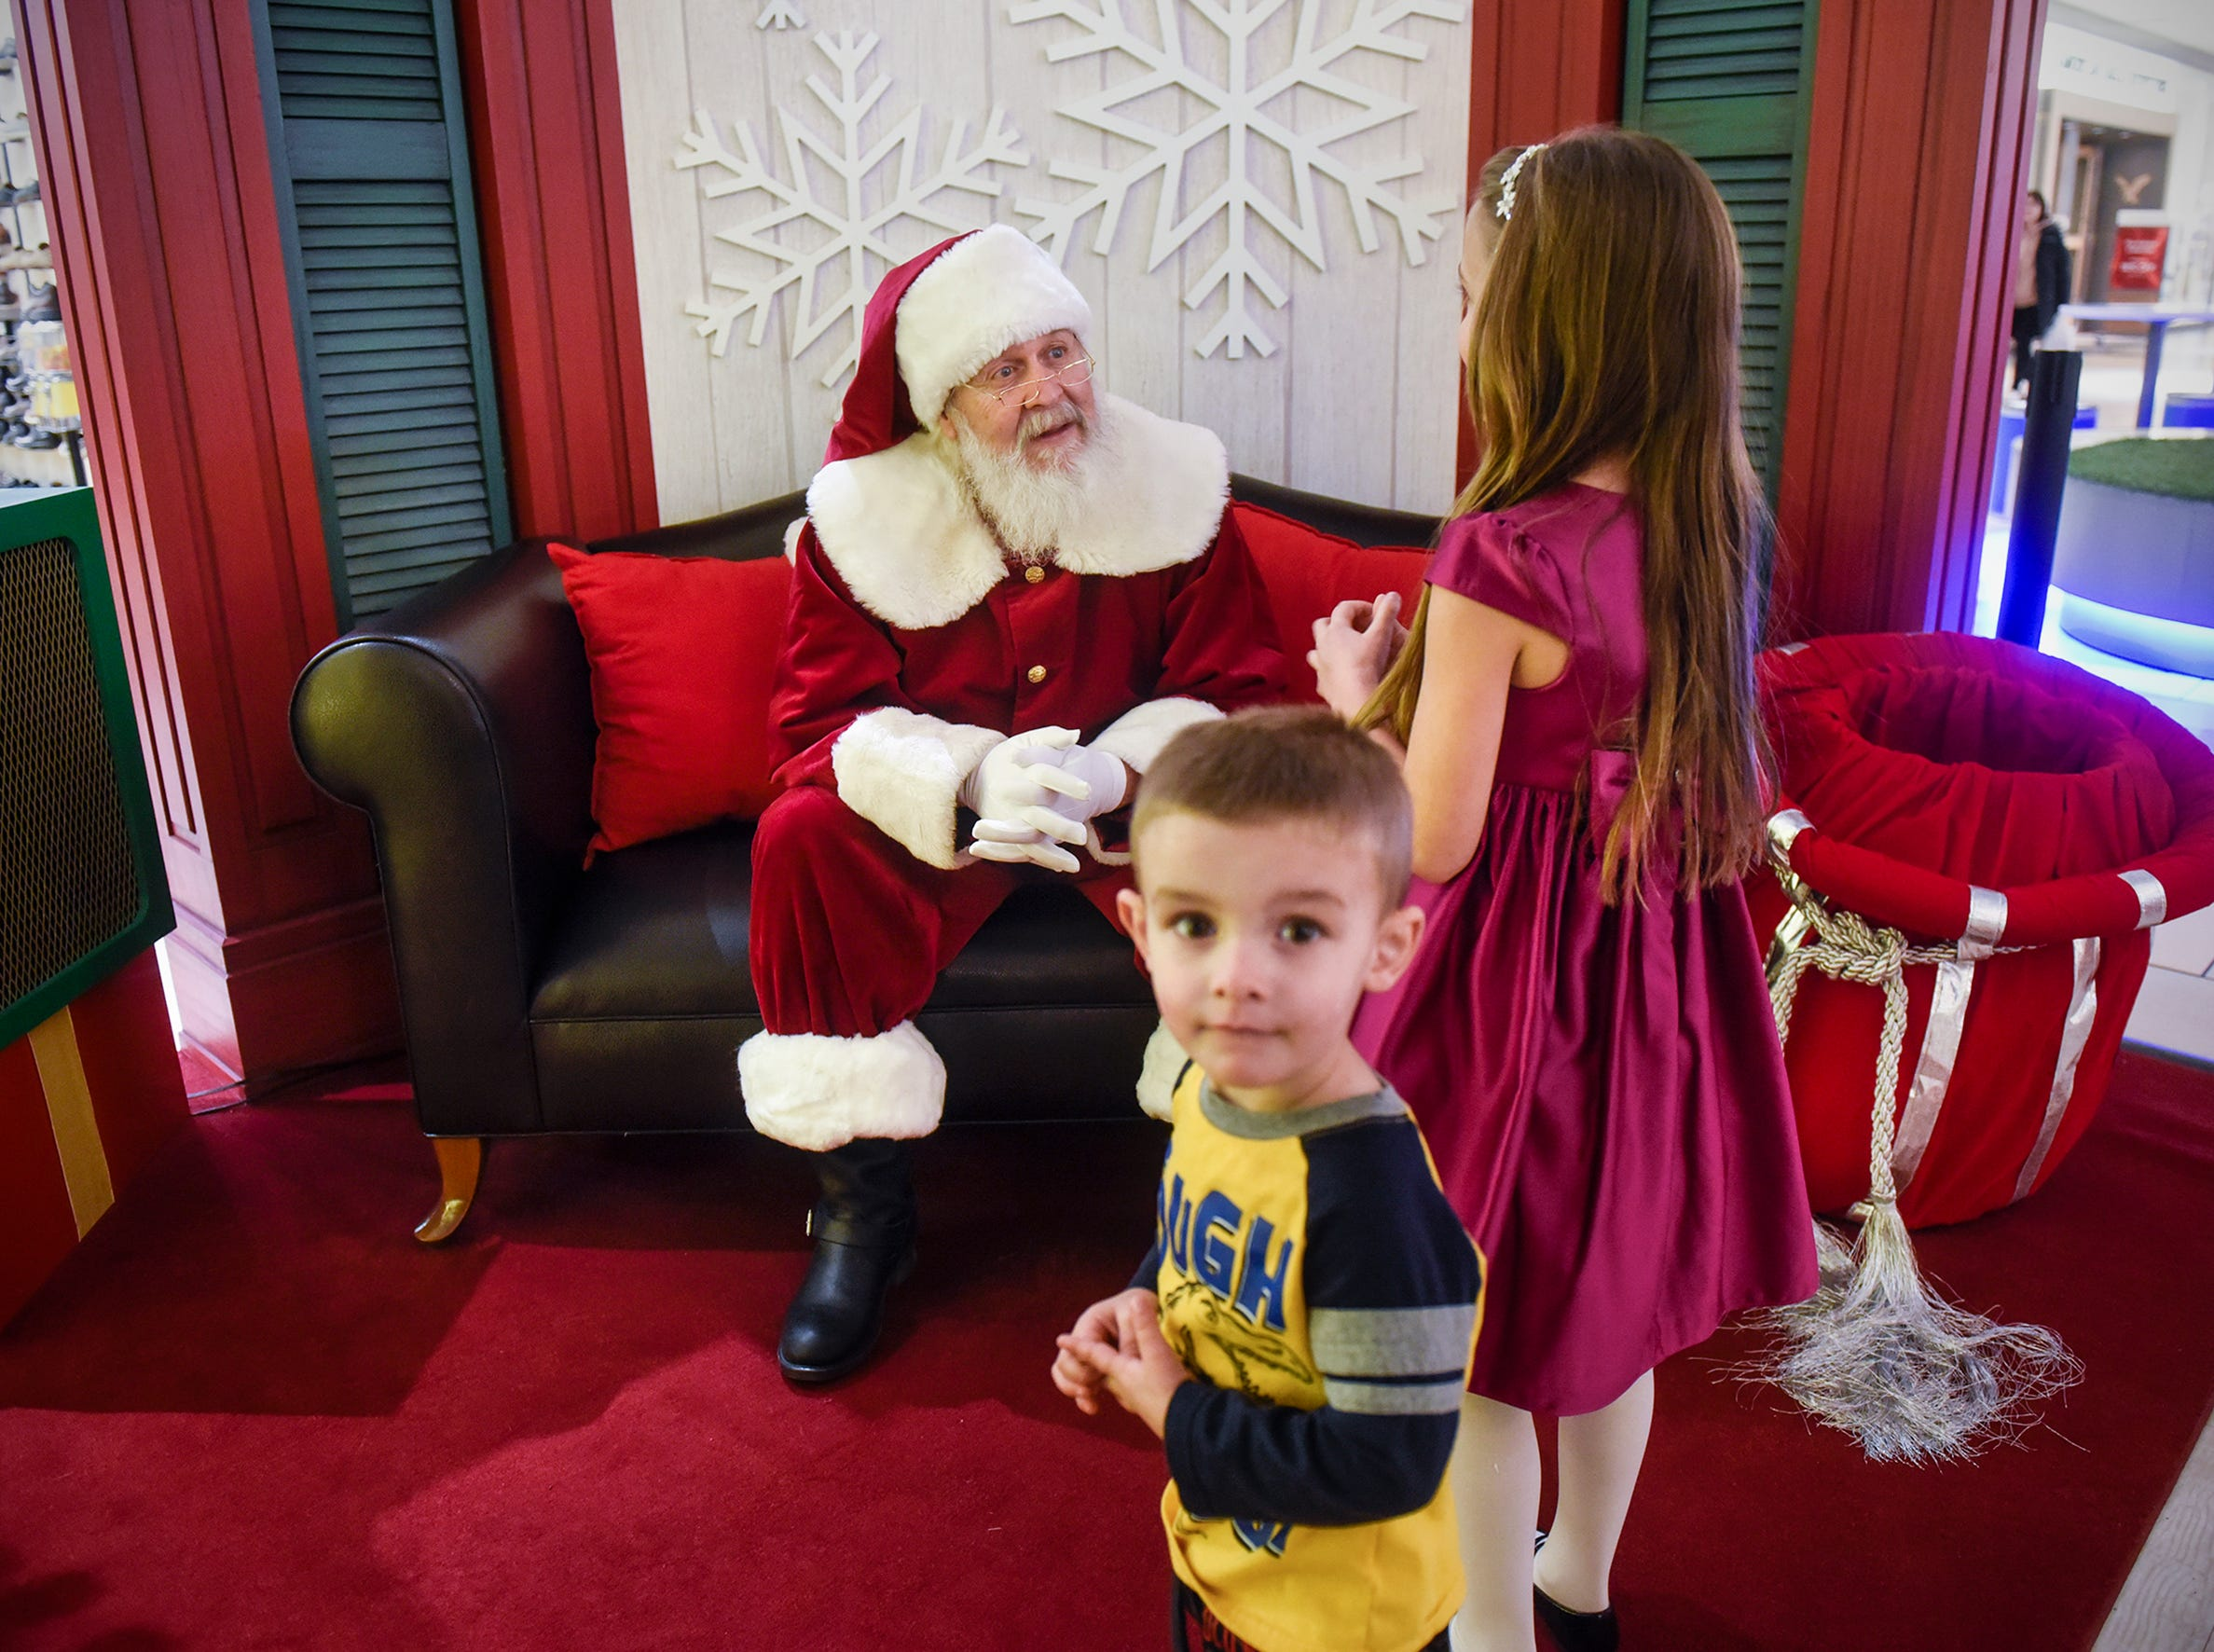 Theodore and Reese Janson get their turn to greet Santa Claus Thursday, Nov. 30, at Crossroads Center in St. Cloud.